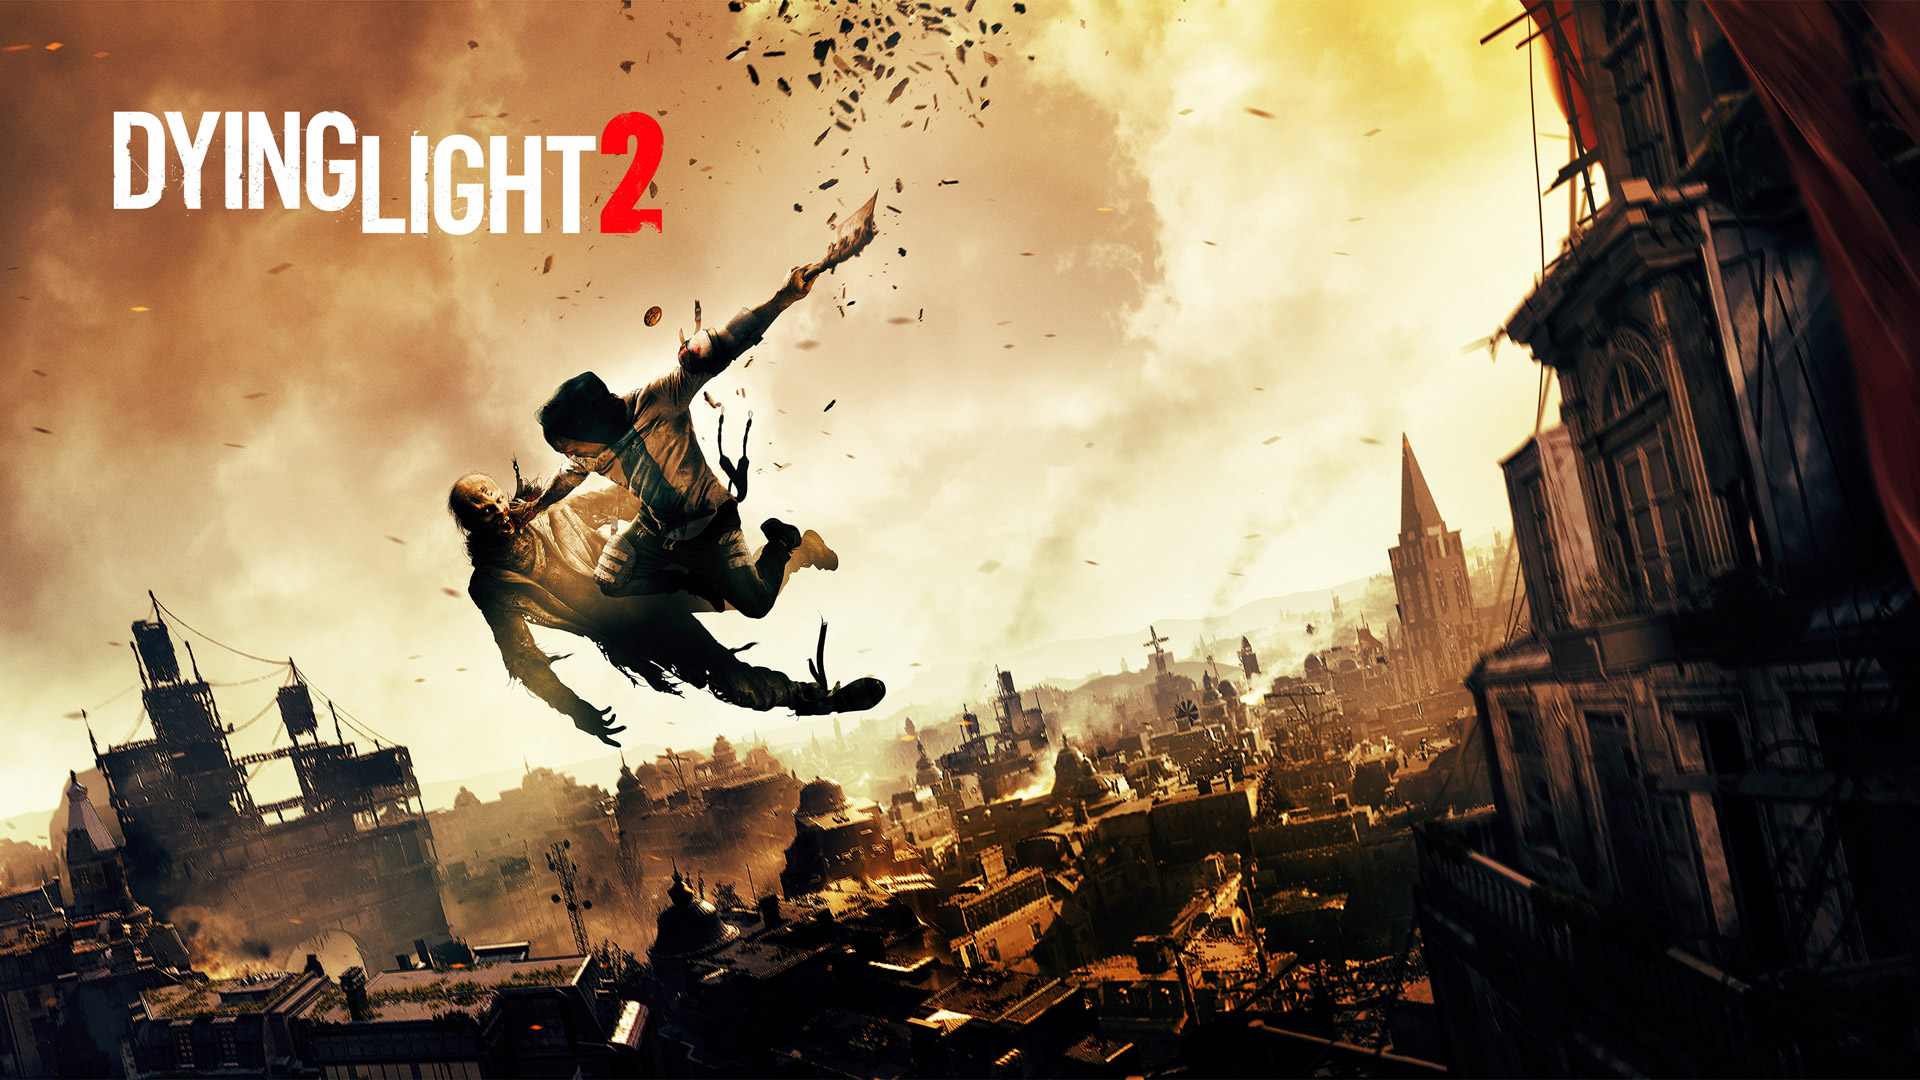 Free Dying Light 2 Wallpaper in 1920x1080